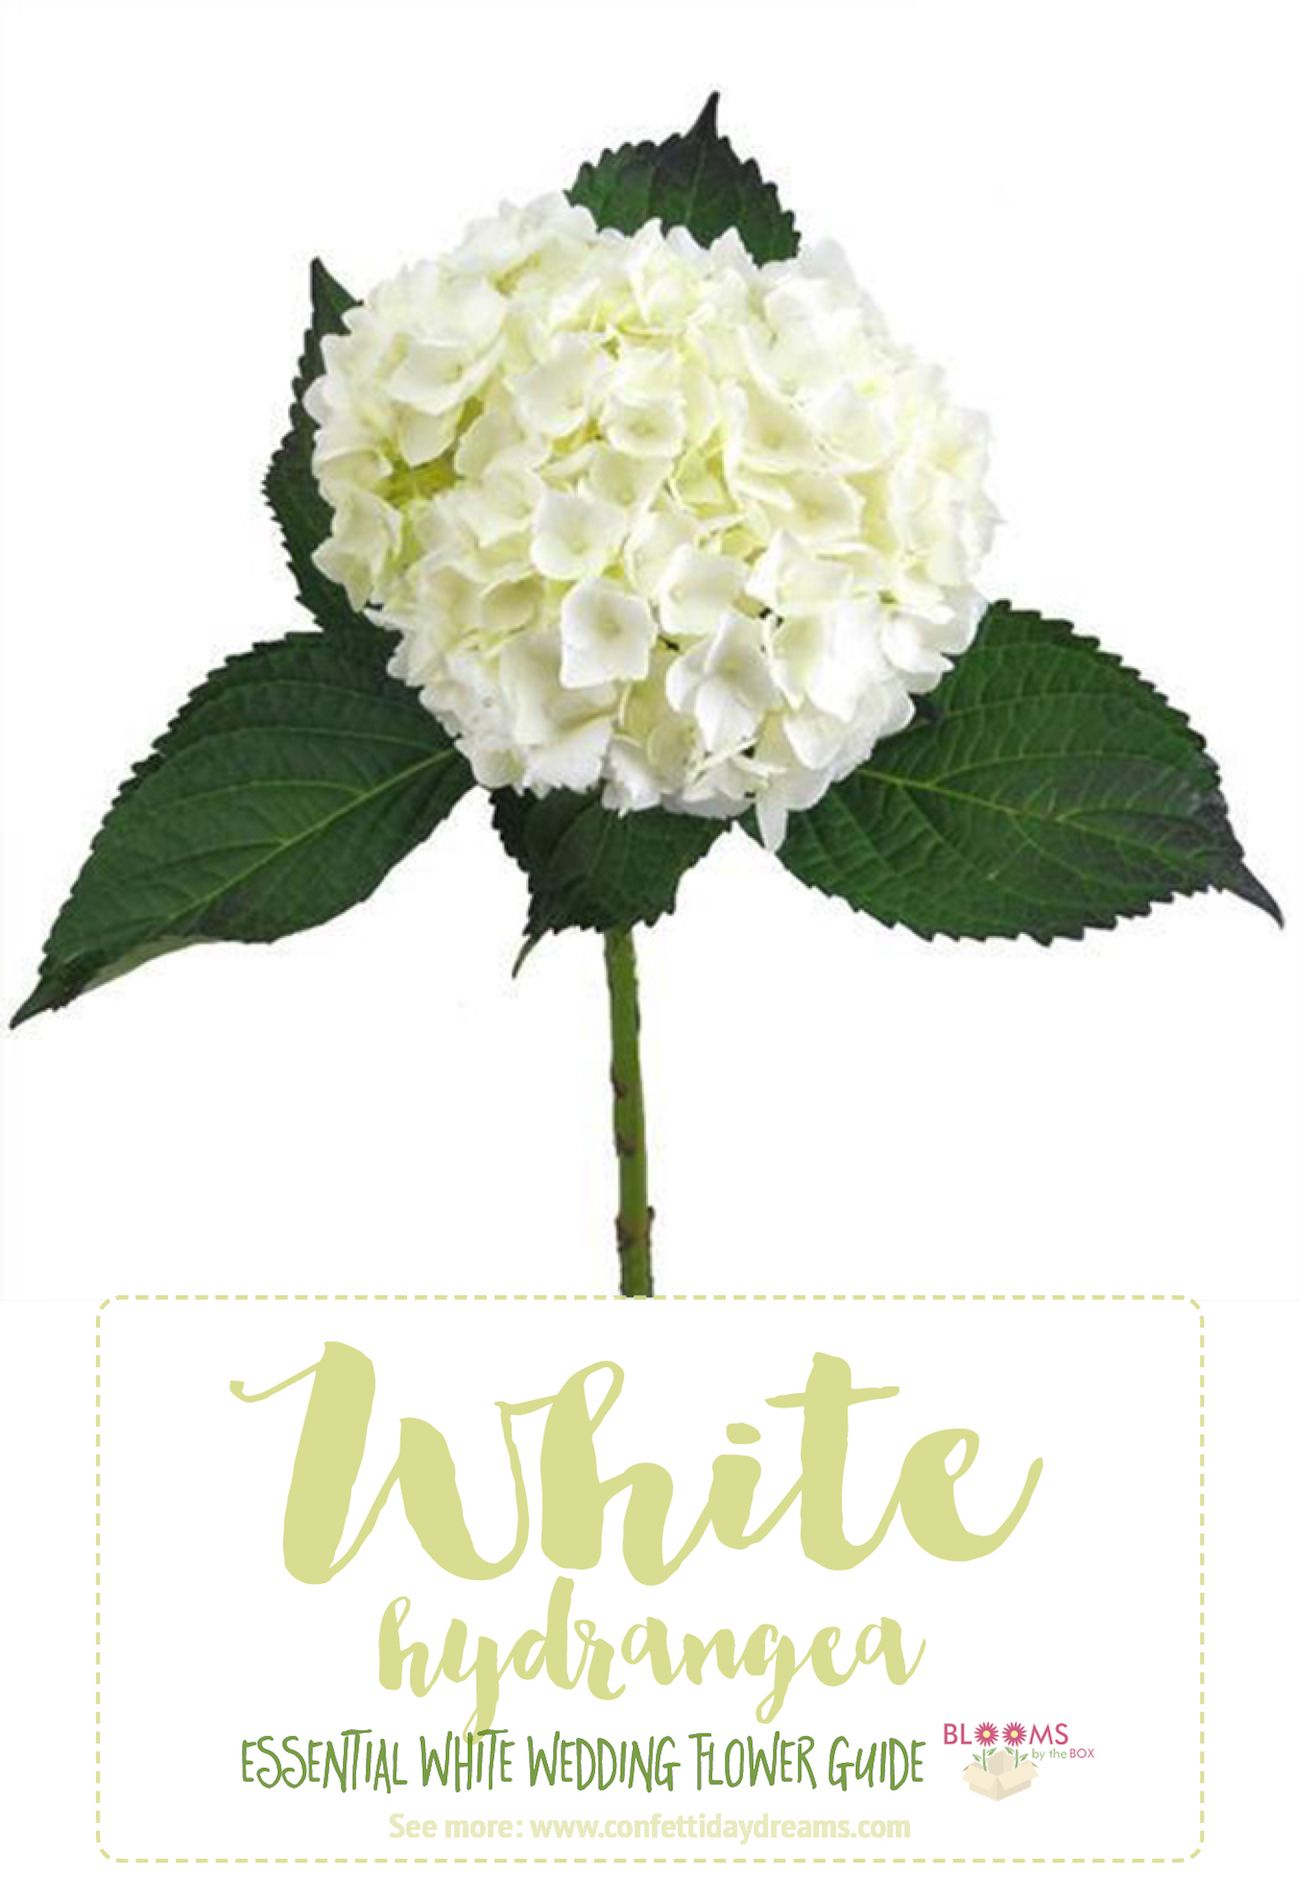 Essential White Wedding Flower Guide Names Types Pics White